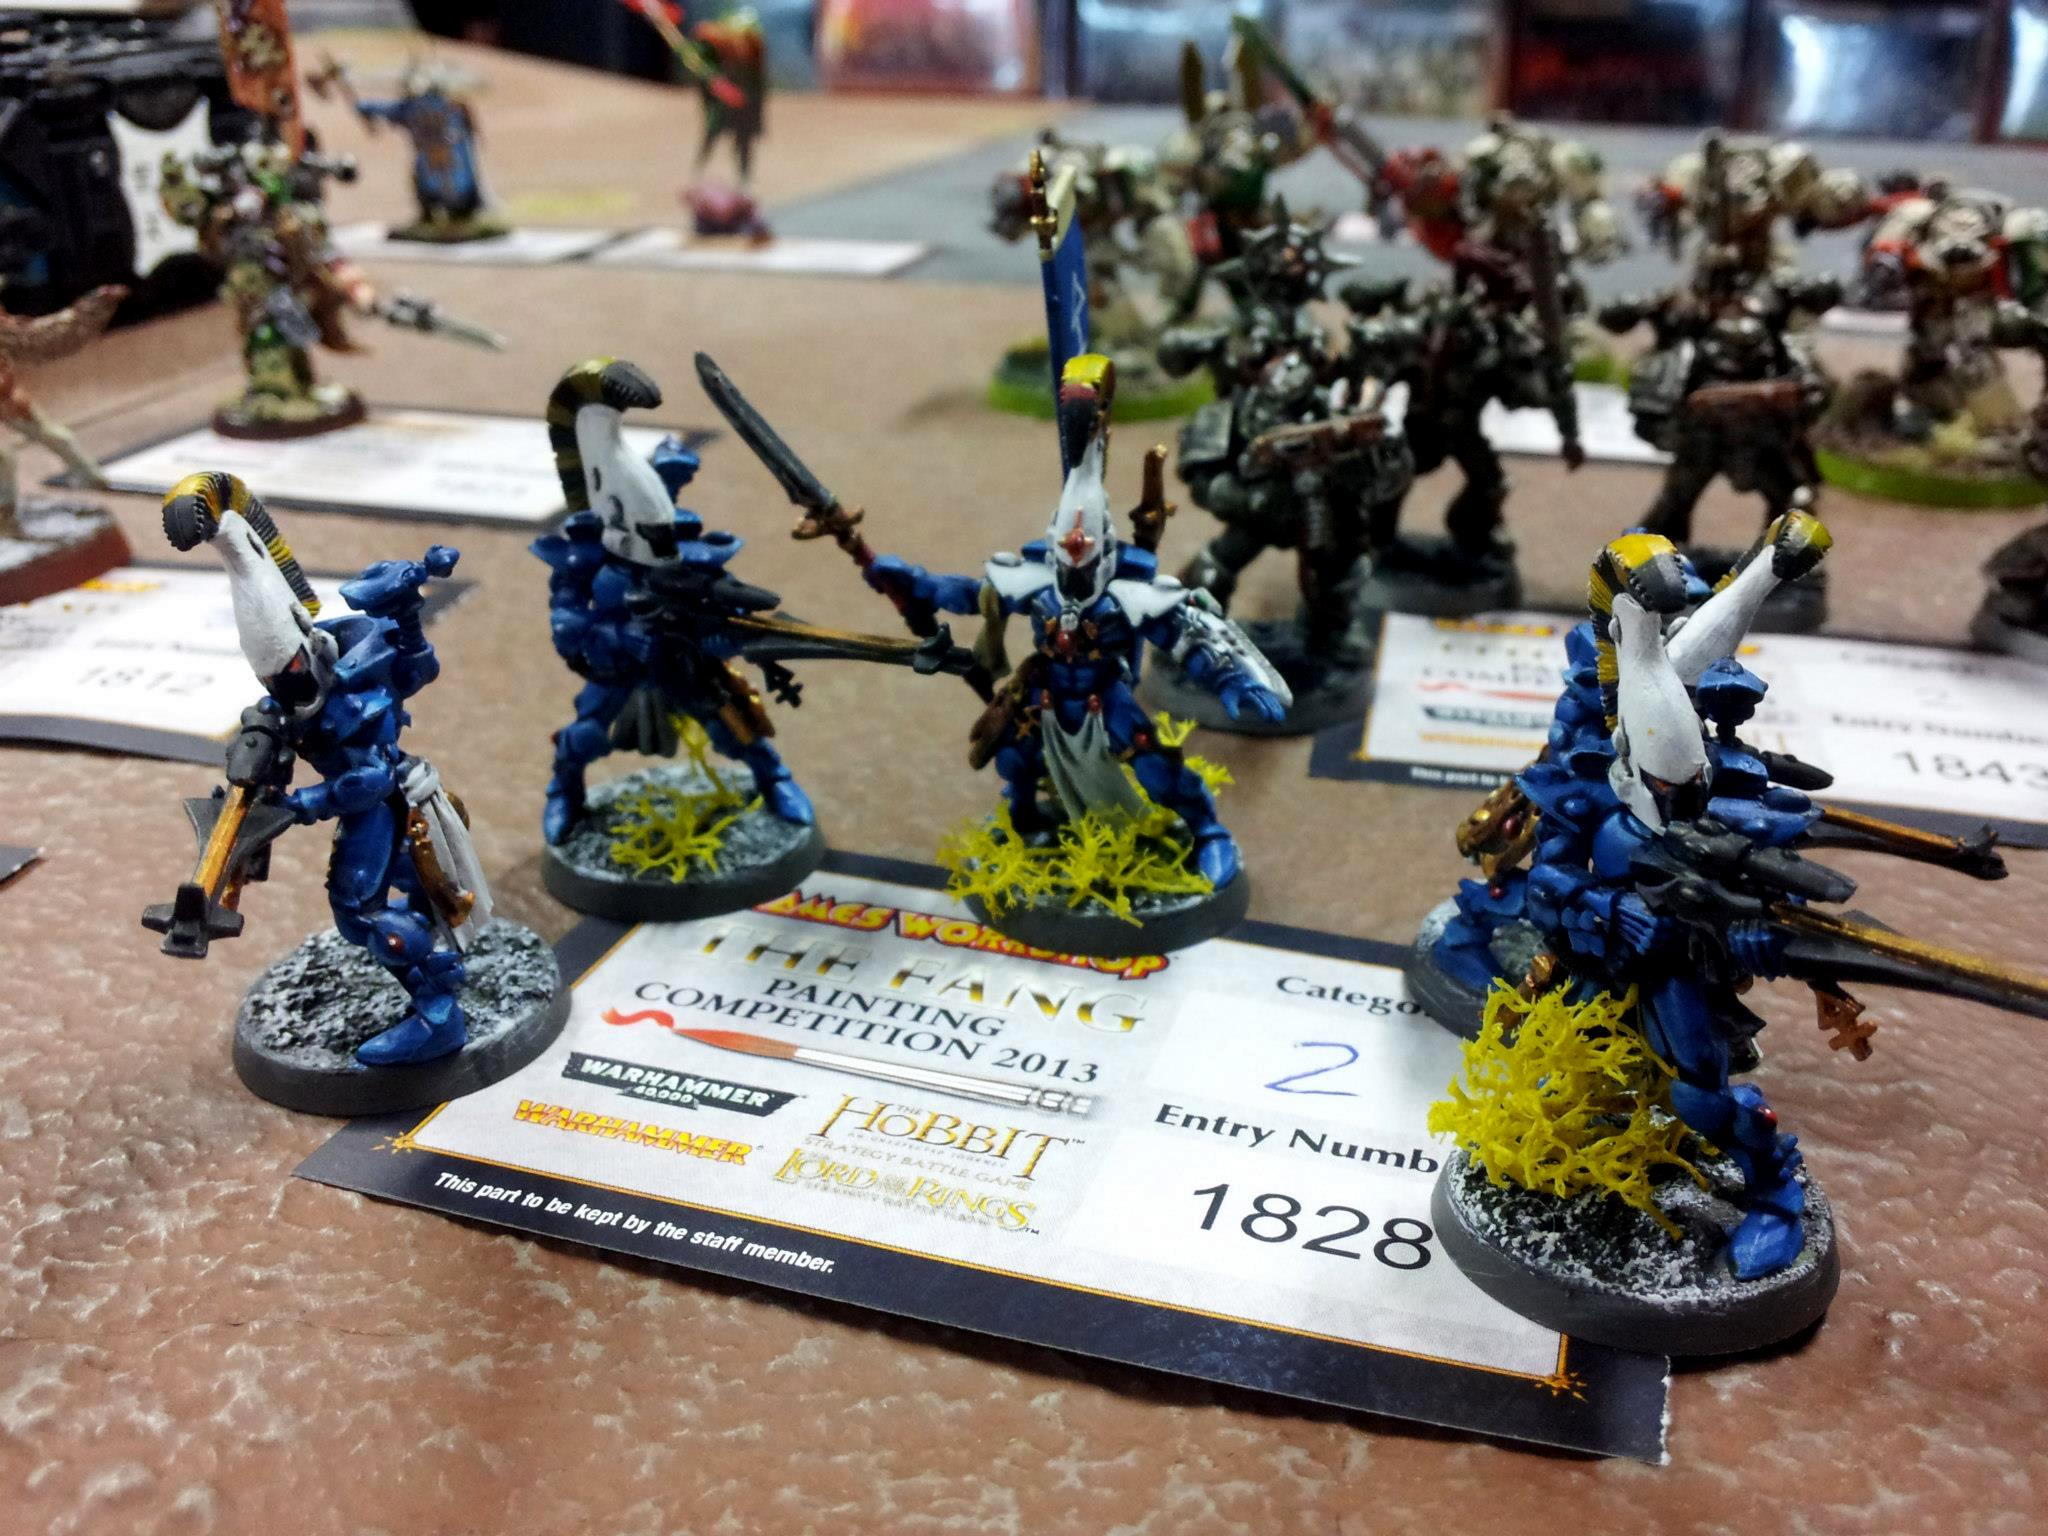 Flylords, The Fang Painting Competition 2013